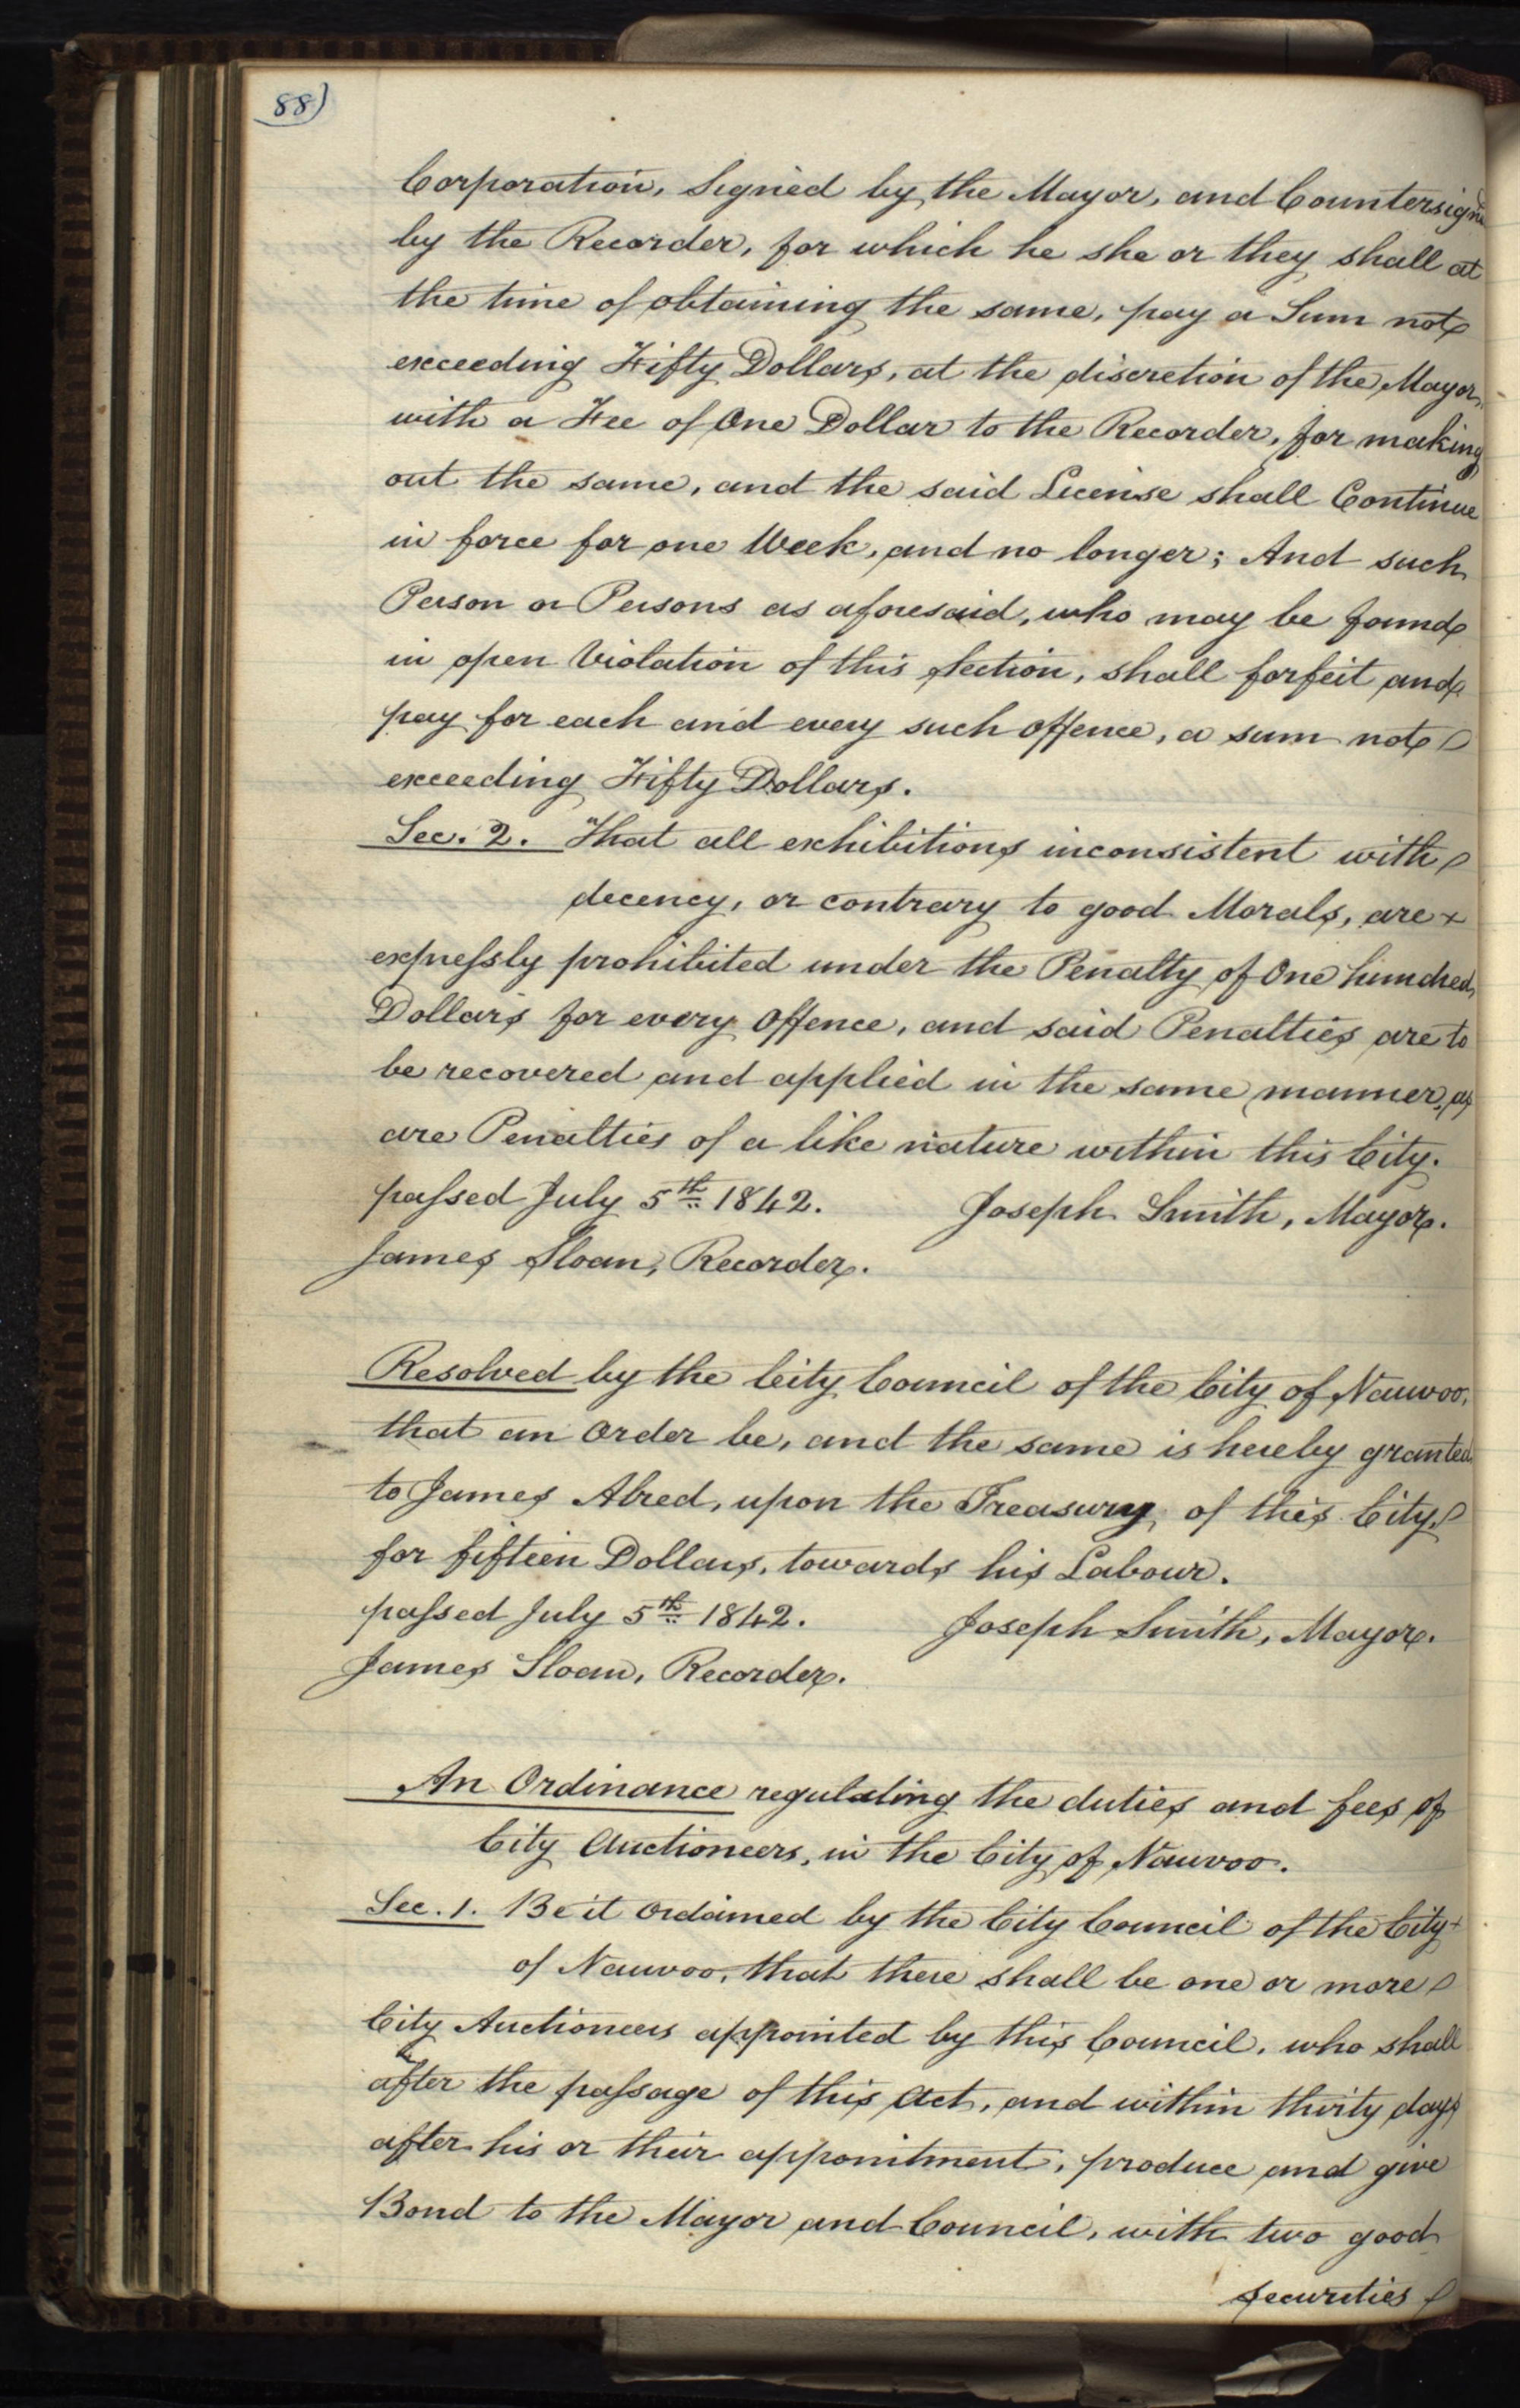 Resolution, 5 July 1842, Page 88